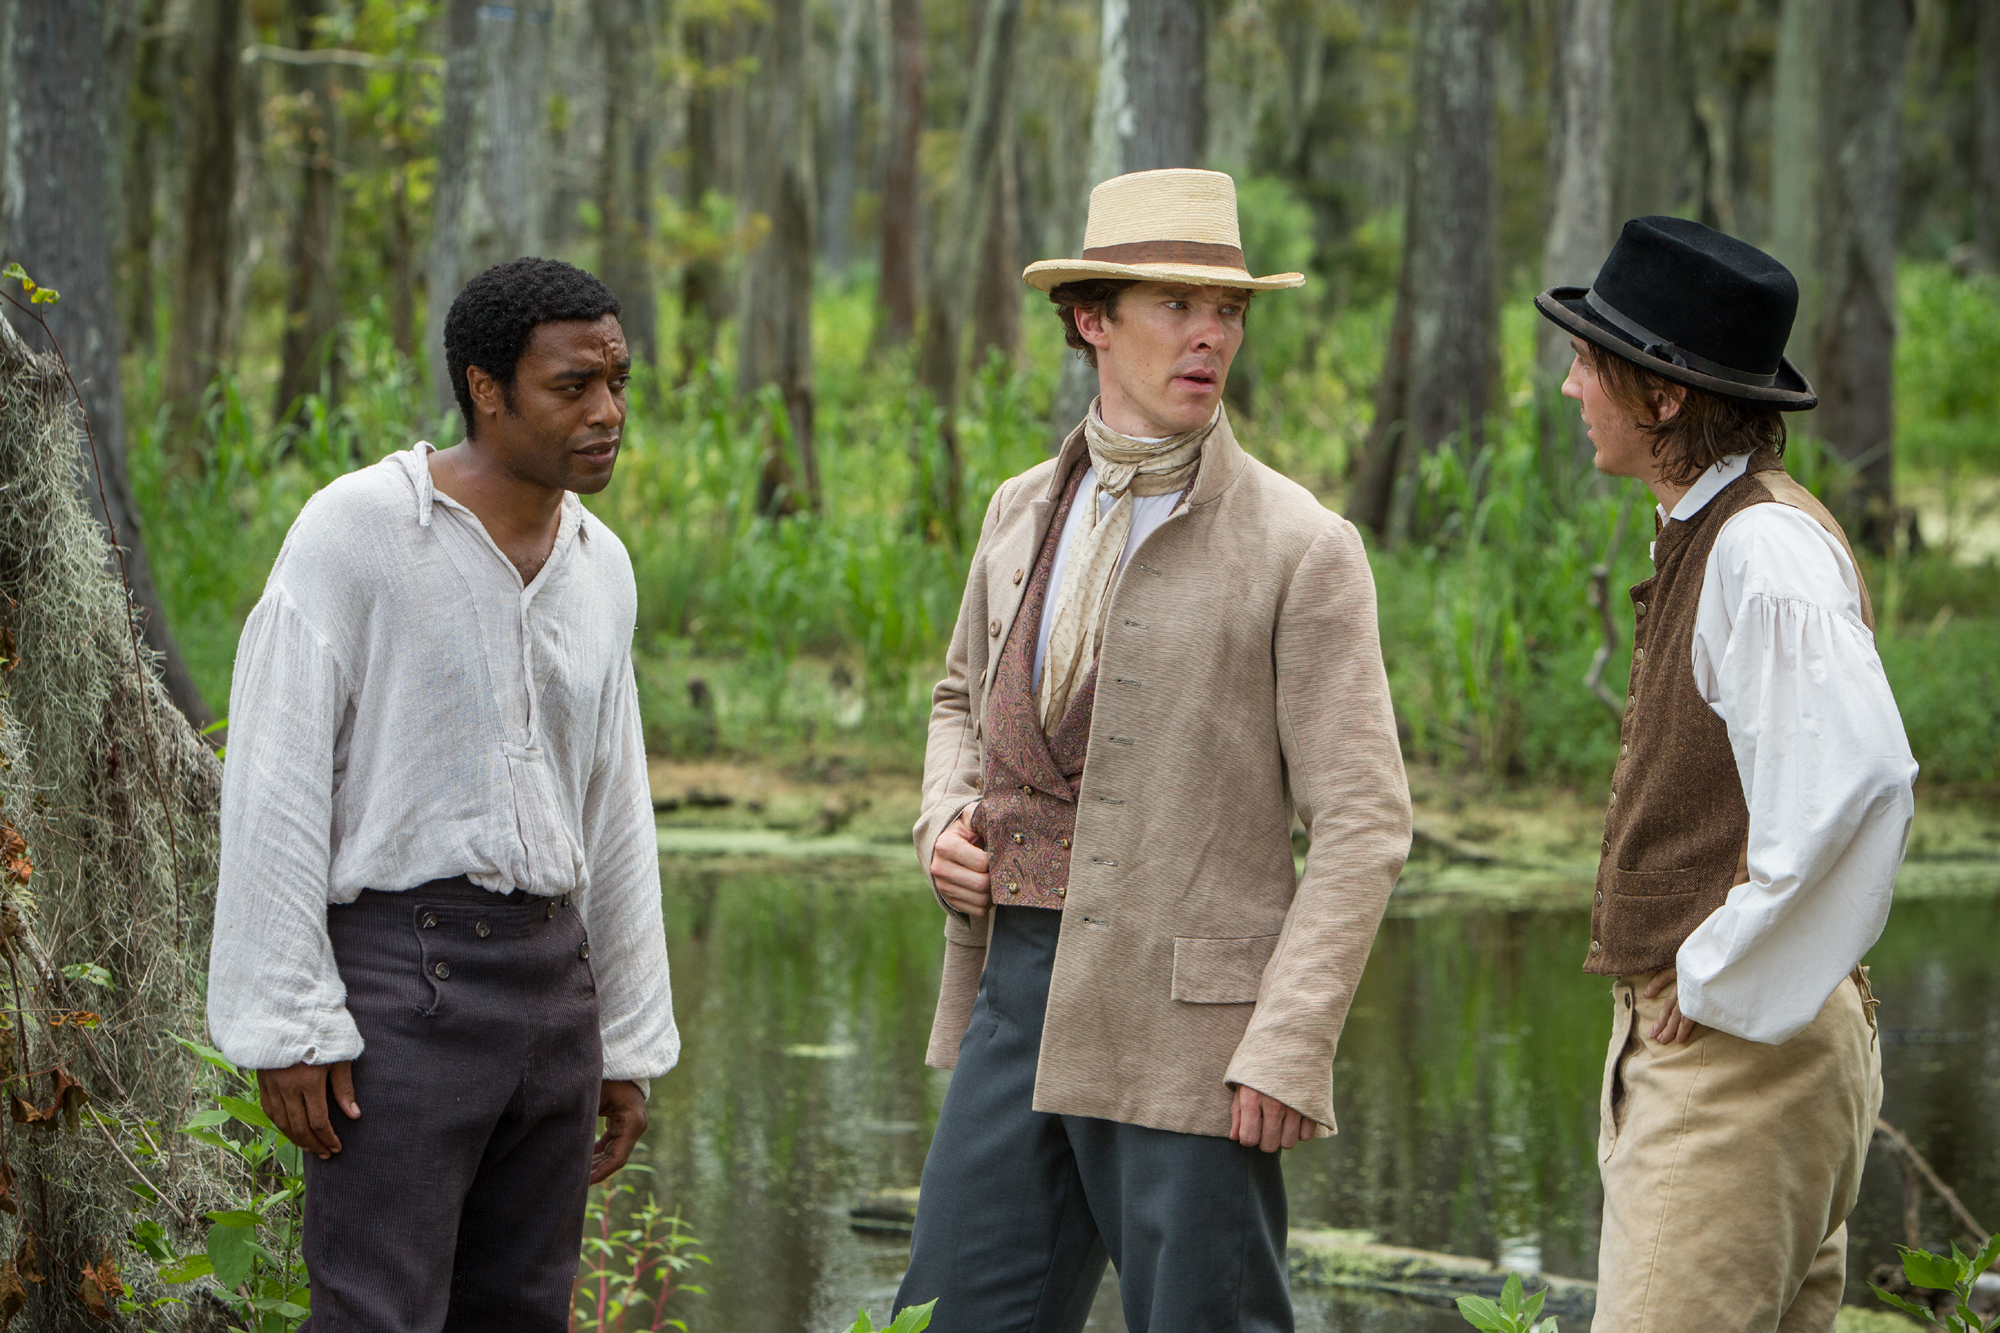 12 years a slave 12 years a slave tells the true story of solomon northup, an educated and free black man living in new york during the 1840's who gets abducted, shipped to the south.